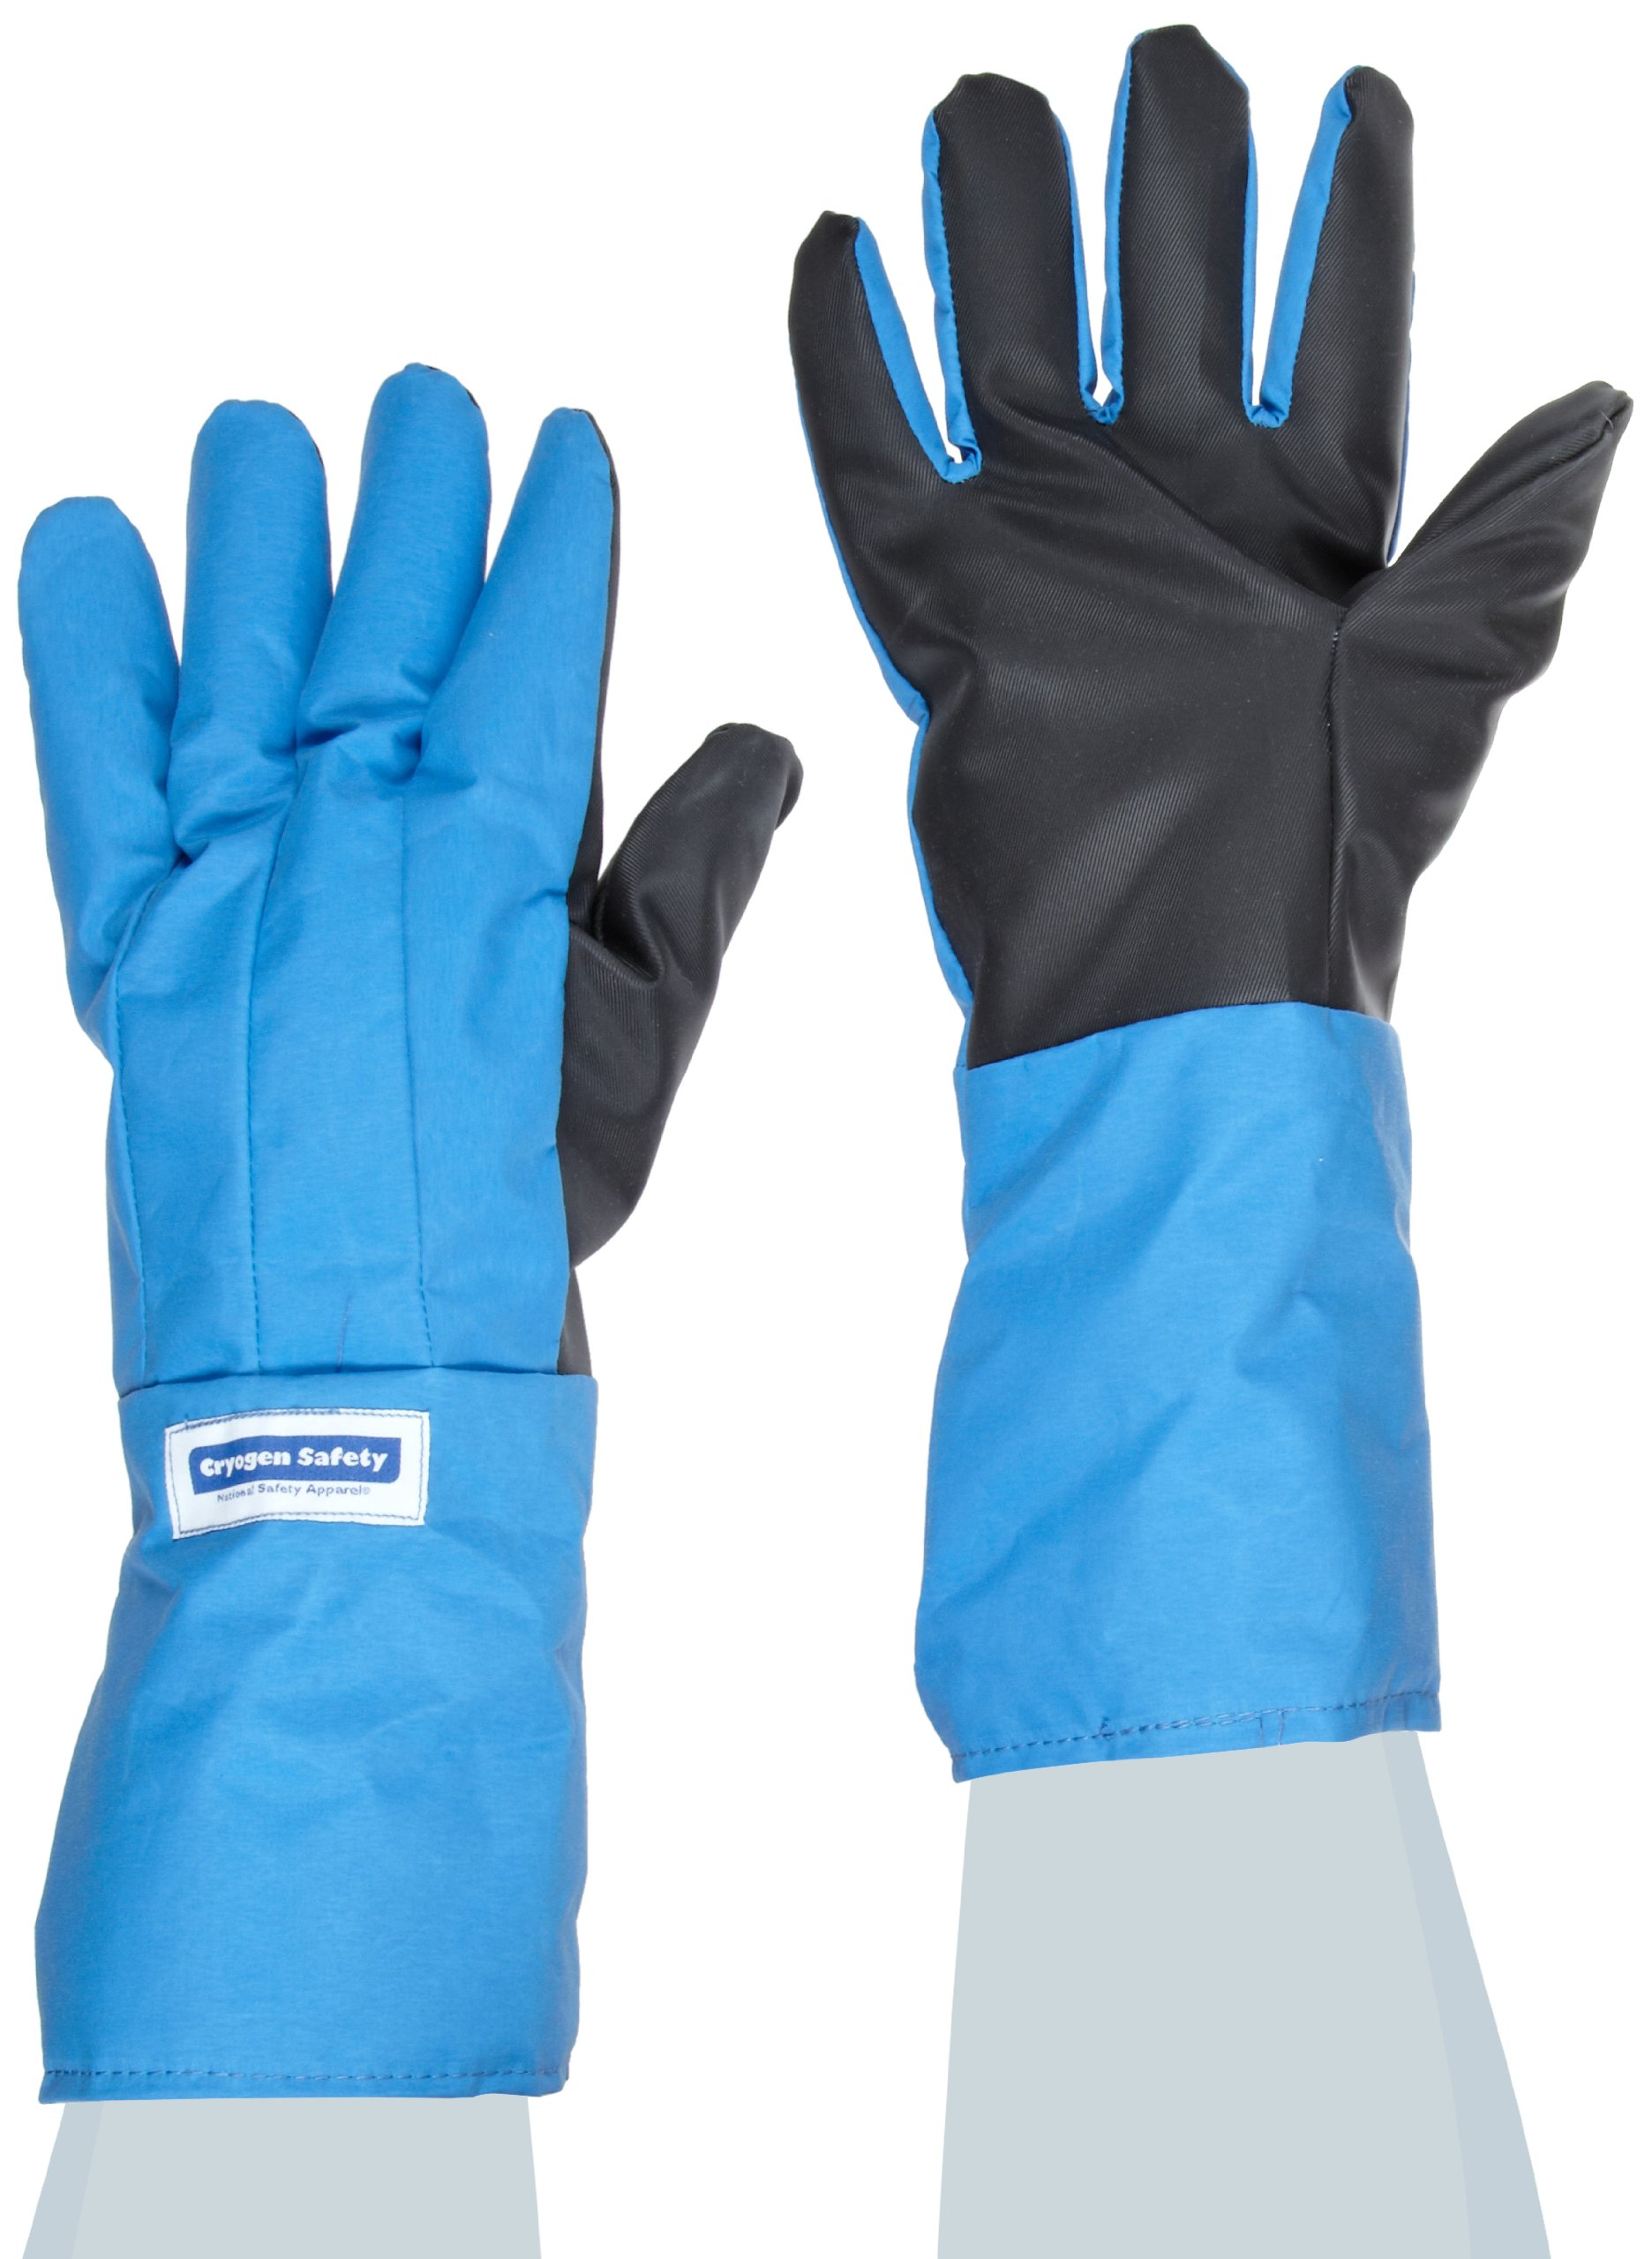 National Safety Apparel G99CRSGPLGMA Nylon Taslan and PTFE Mid-Arm Waterproof Safety Glove with SaferGrip Palm, Cryogenic, 14'' - 15'' Length, Large, Blue